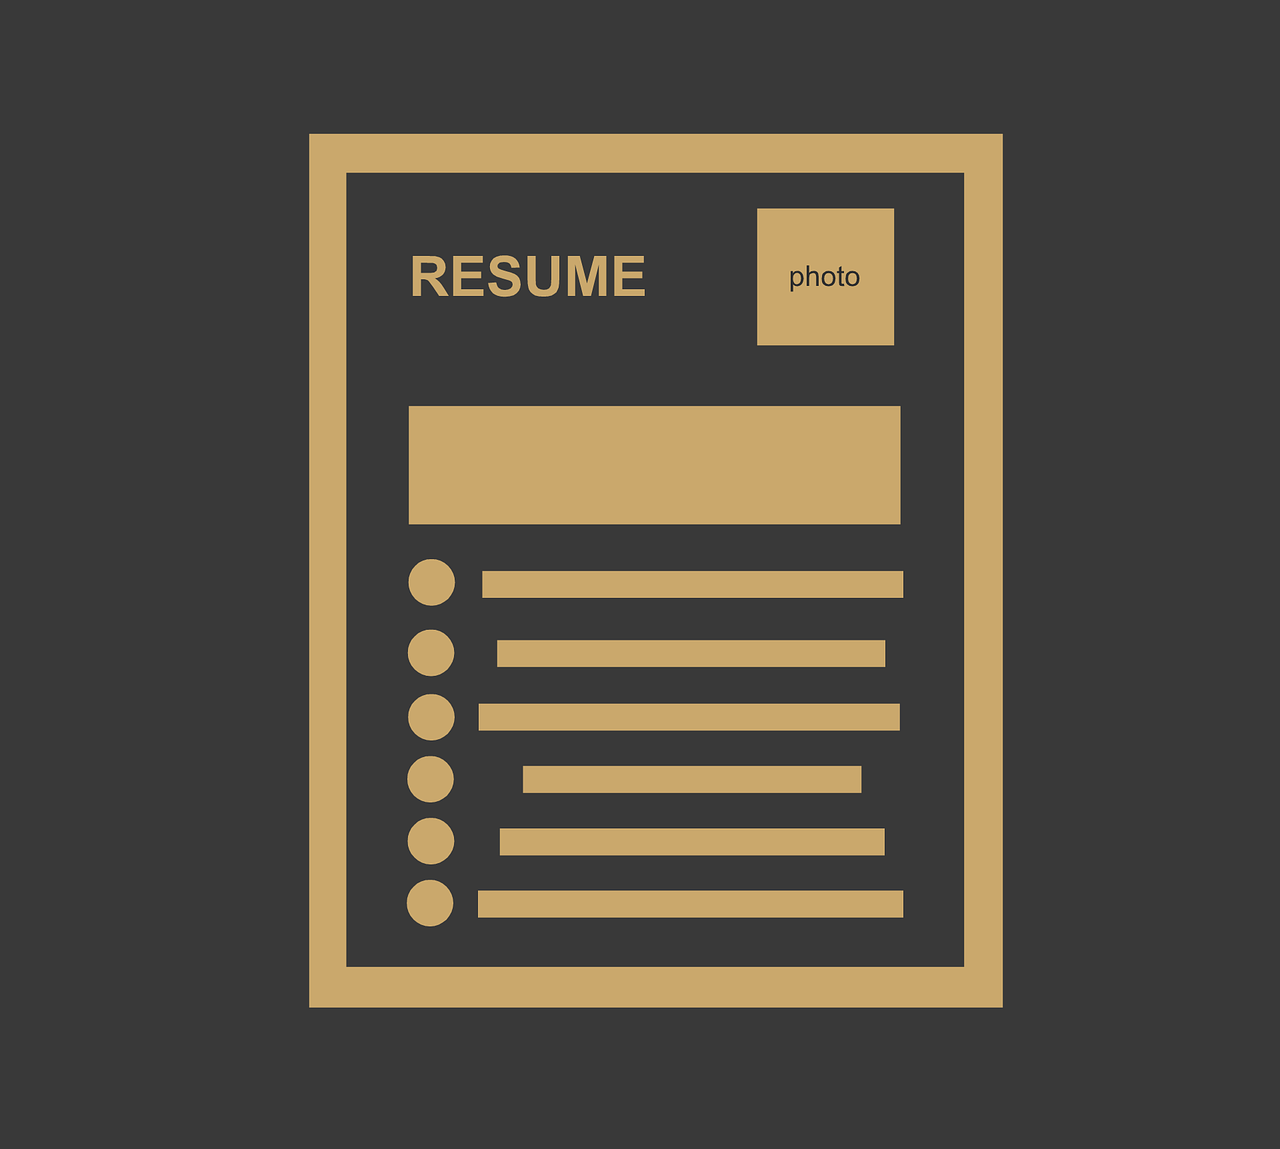 4 Quick Fixes for Resume Don'ts